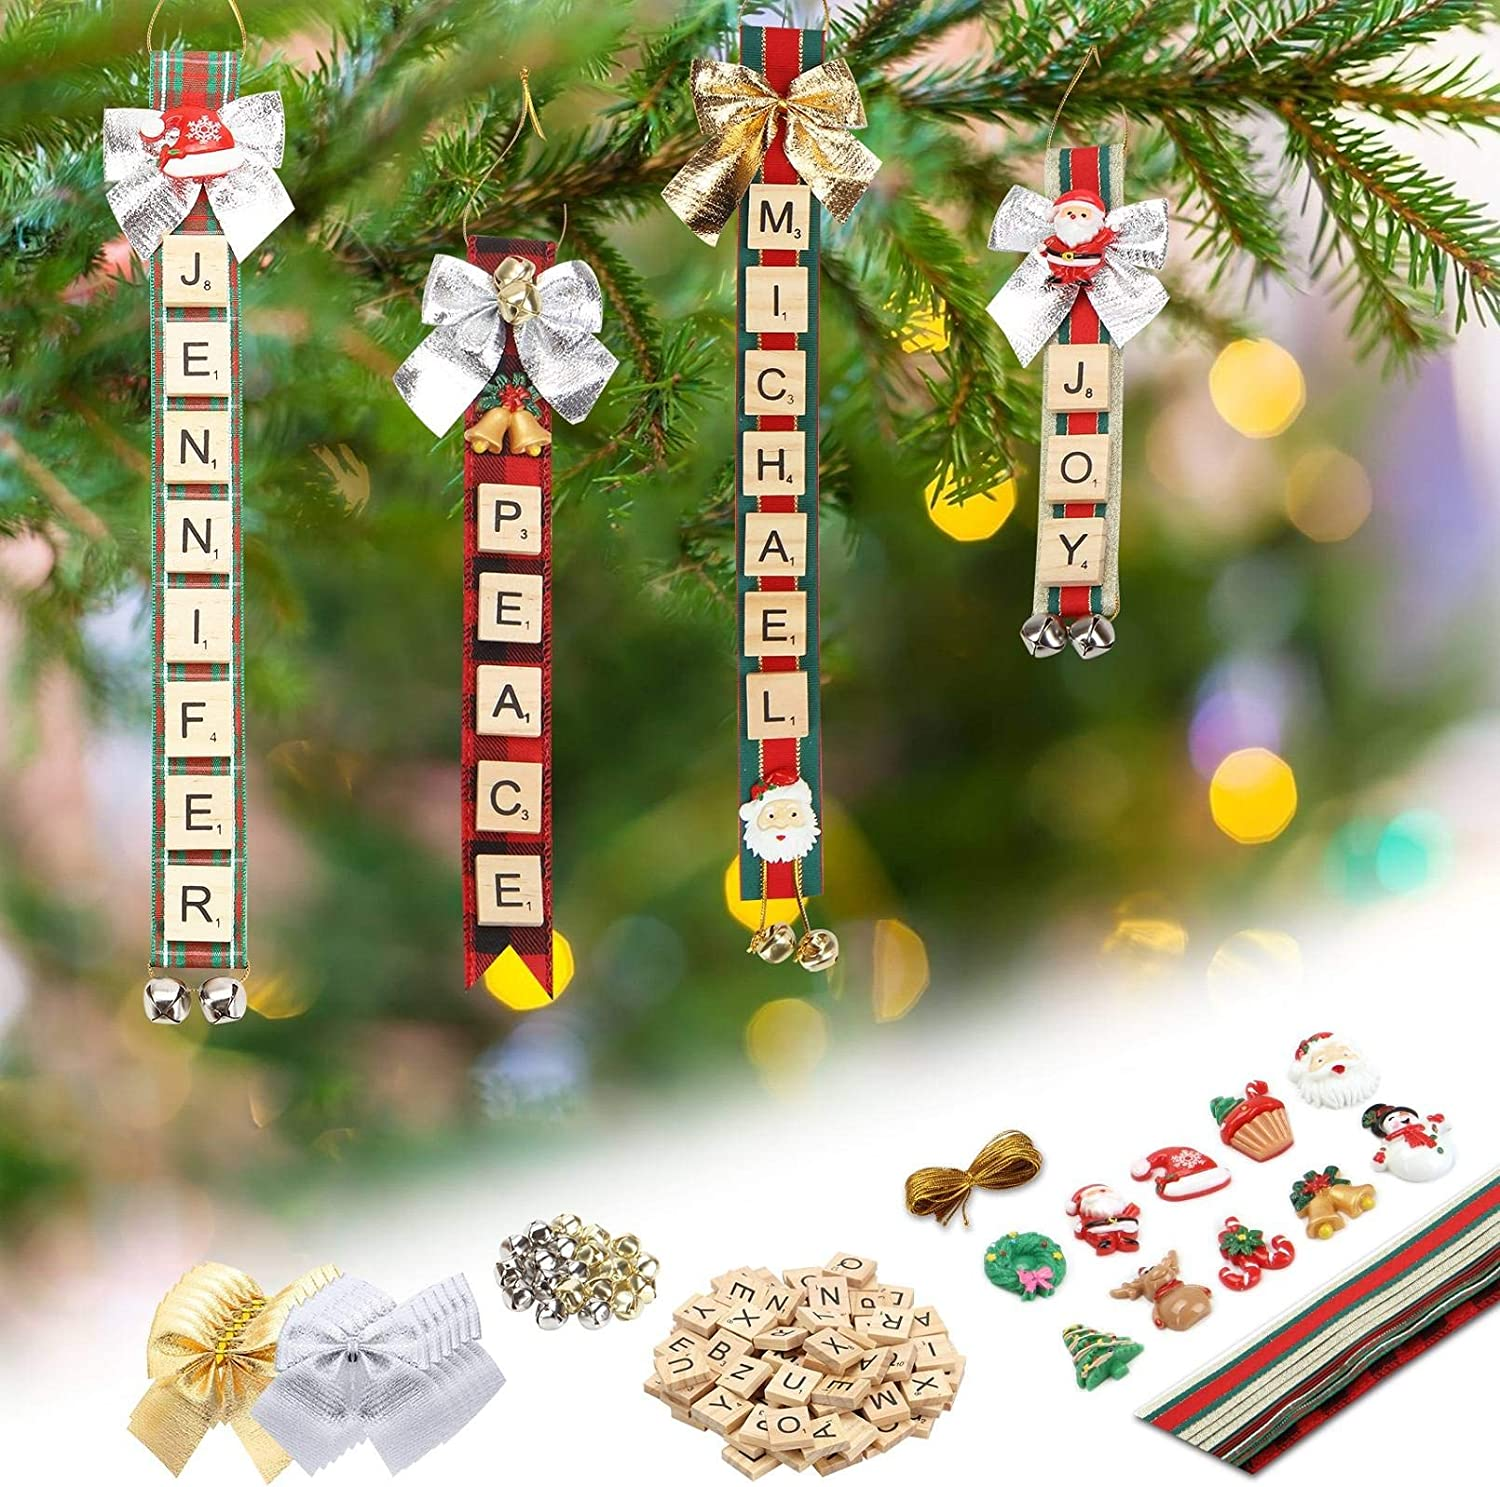 Max 58% OFF Christmas Ornaments Tree Decorations for Crafts Gir Personalized Quality inspection